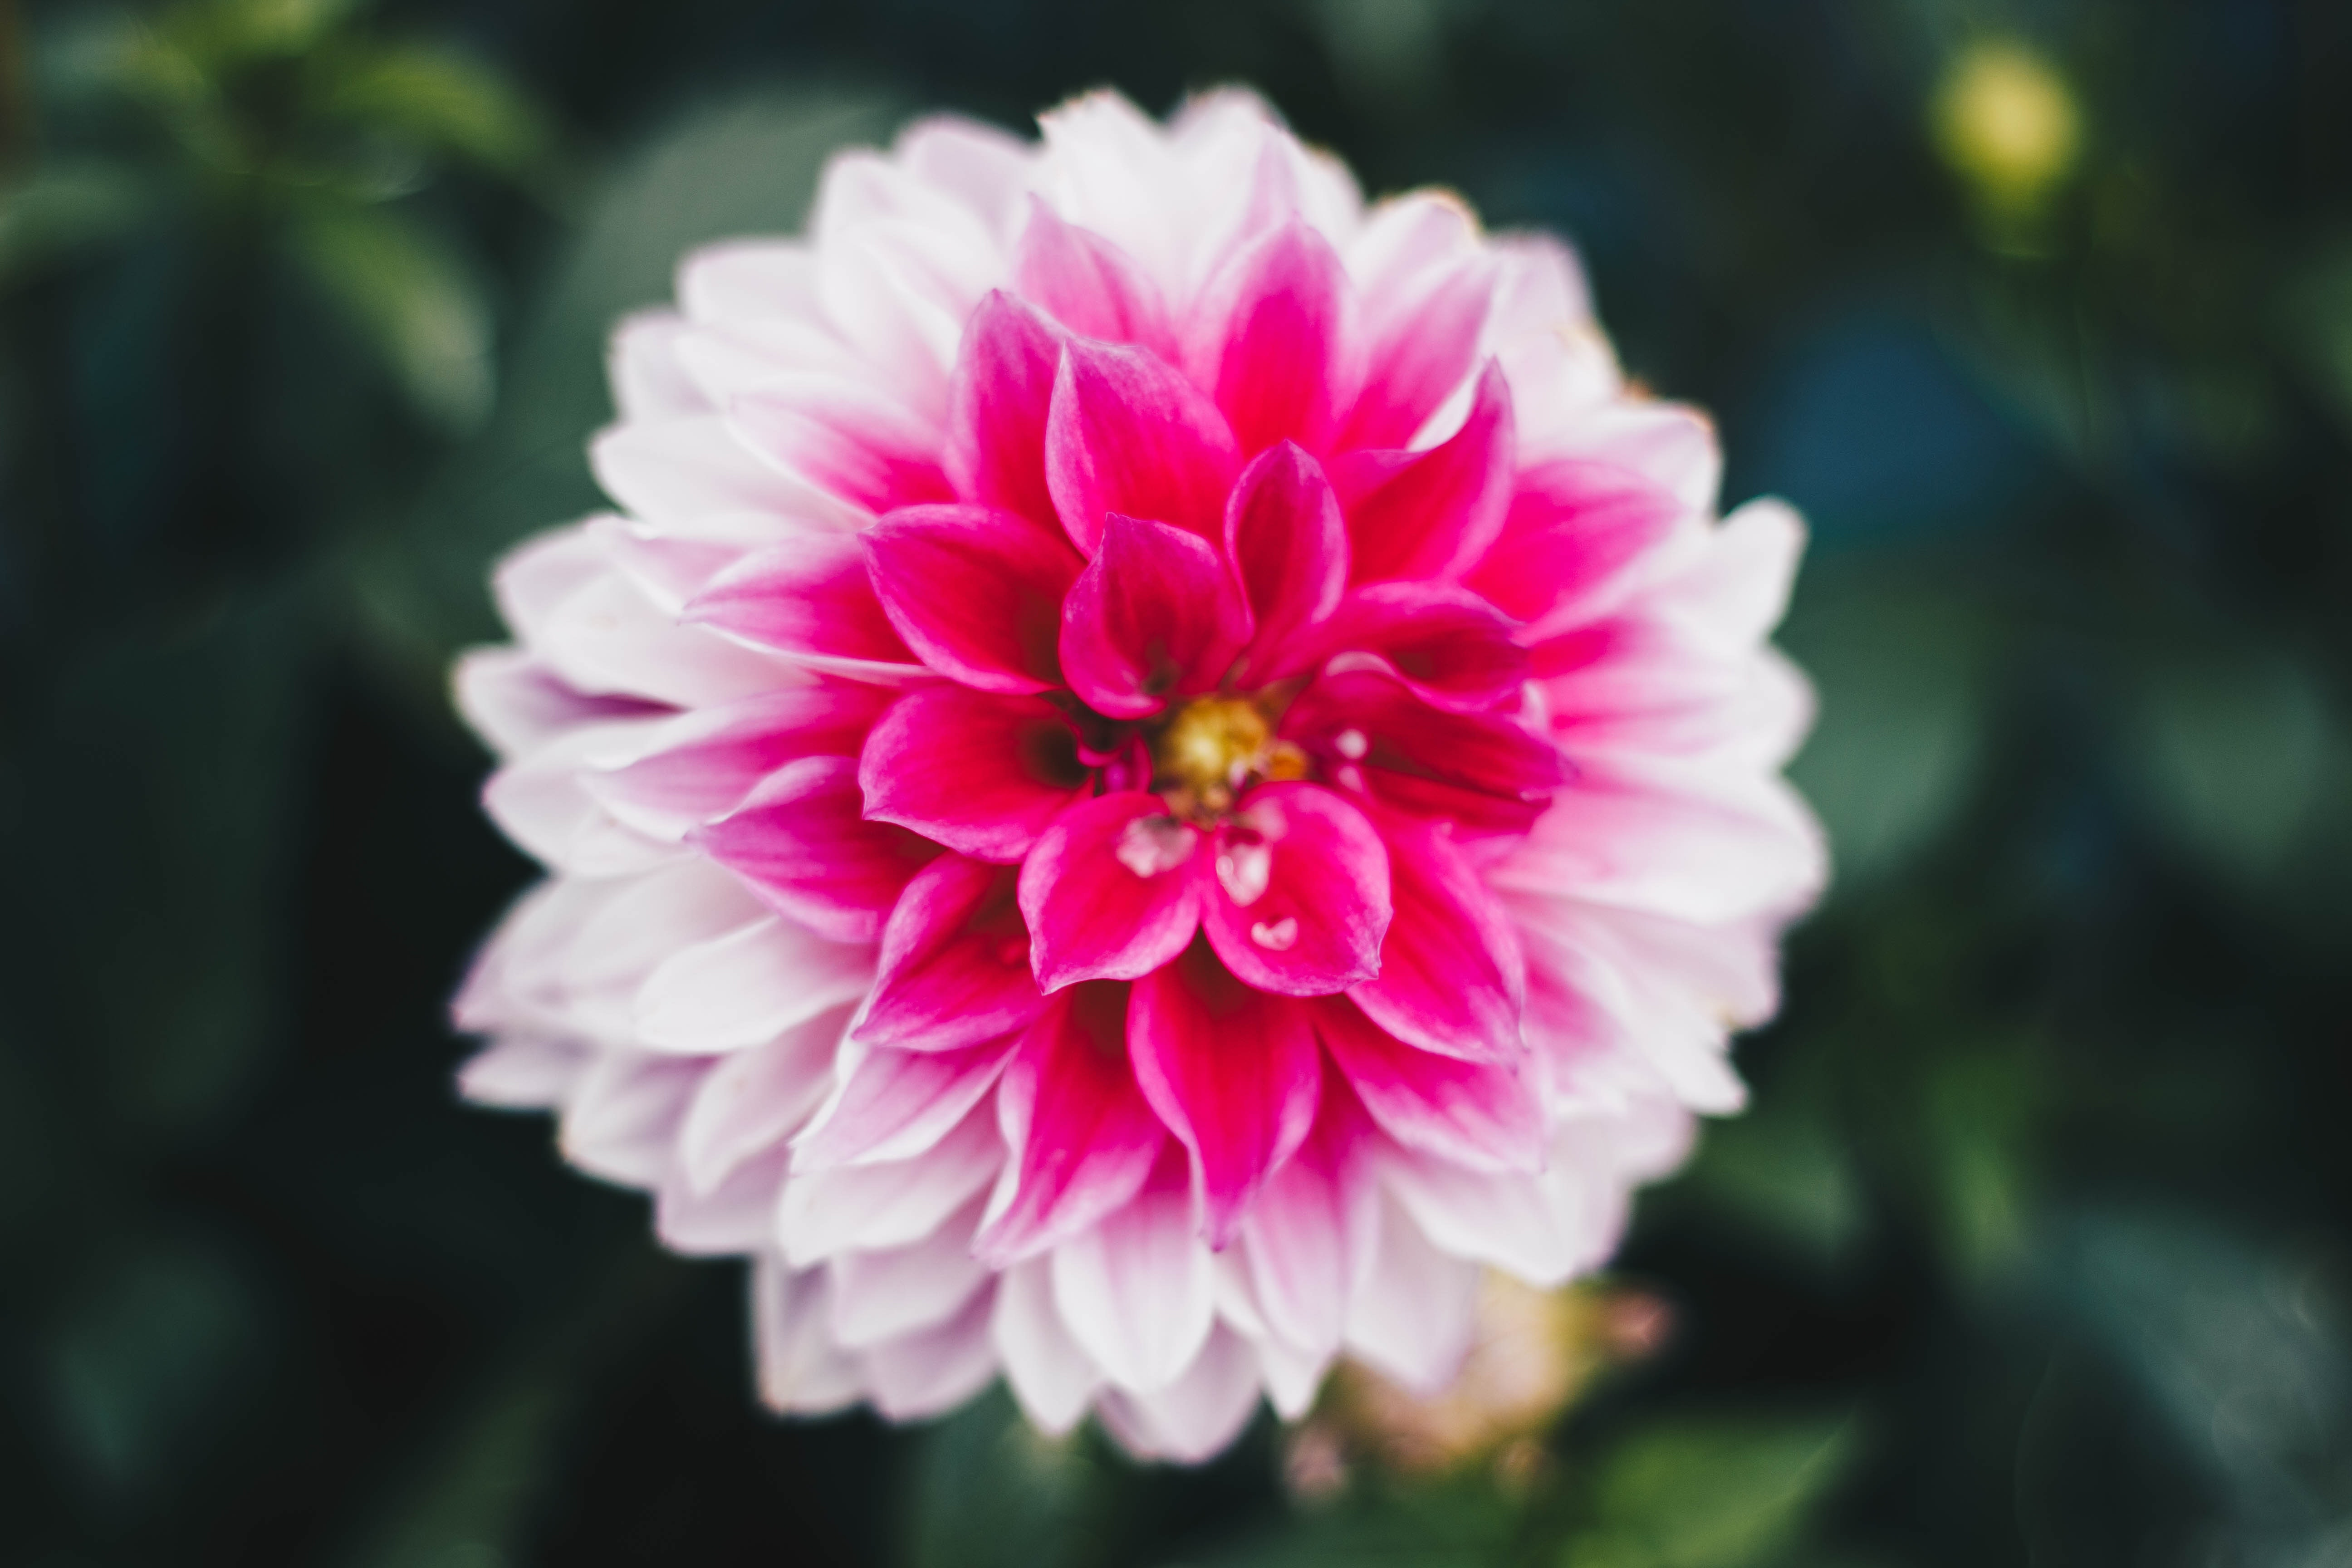 Macro photography of pink and white carnation flower